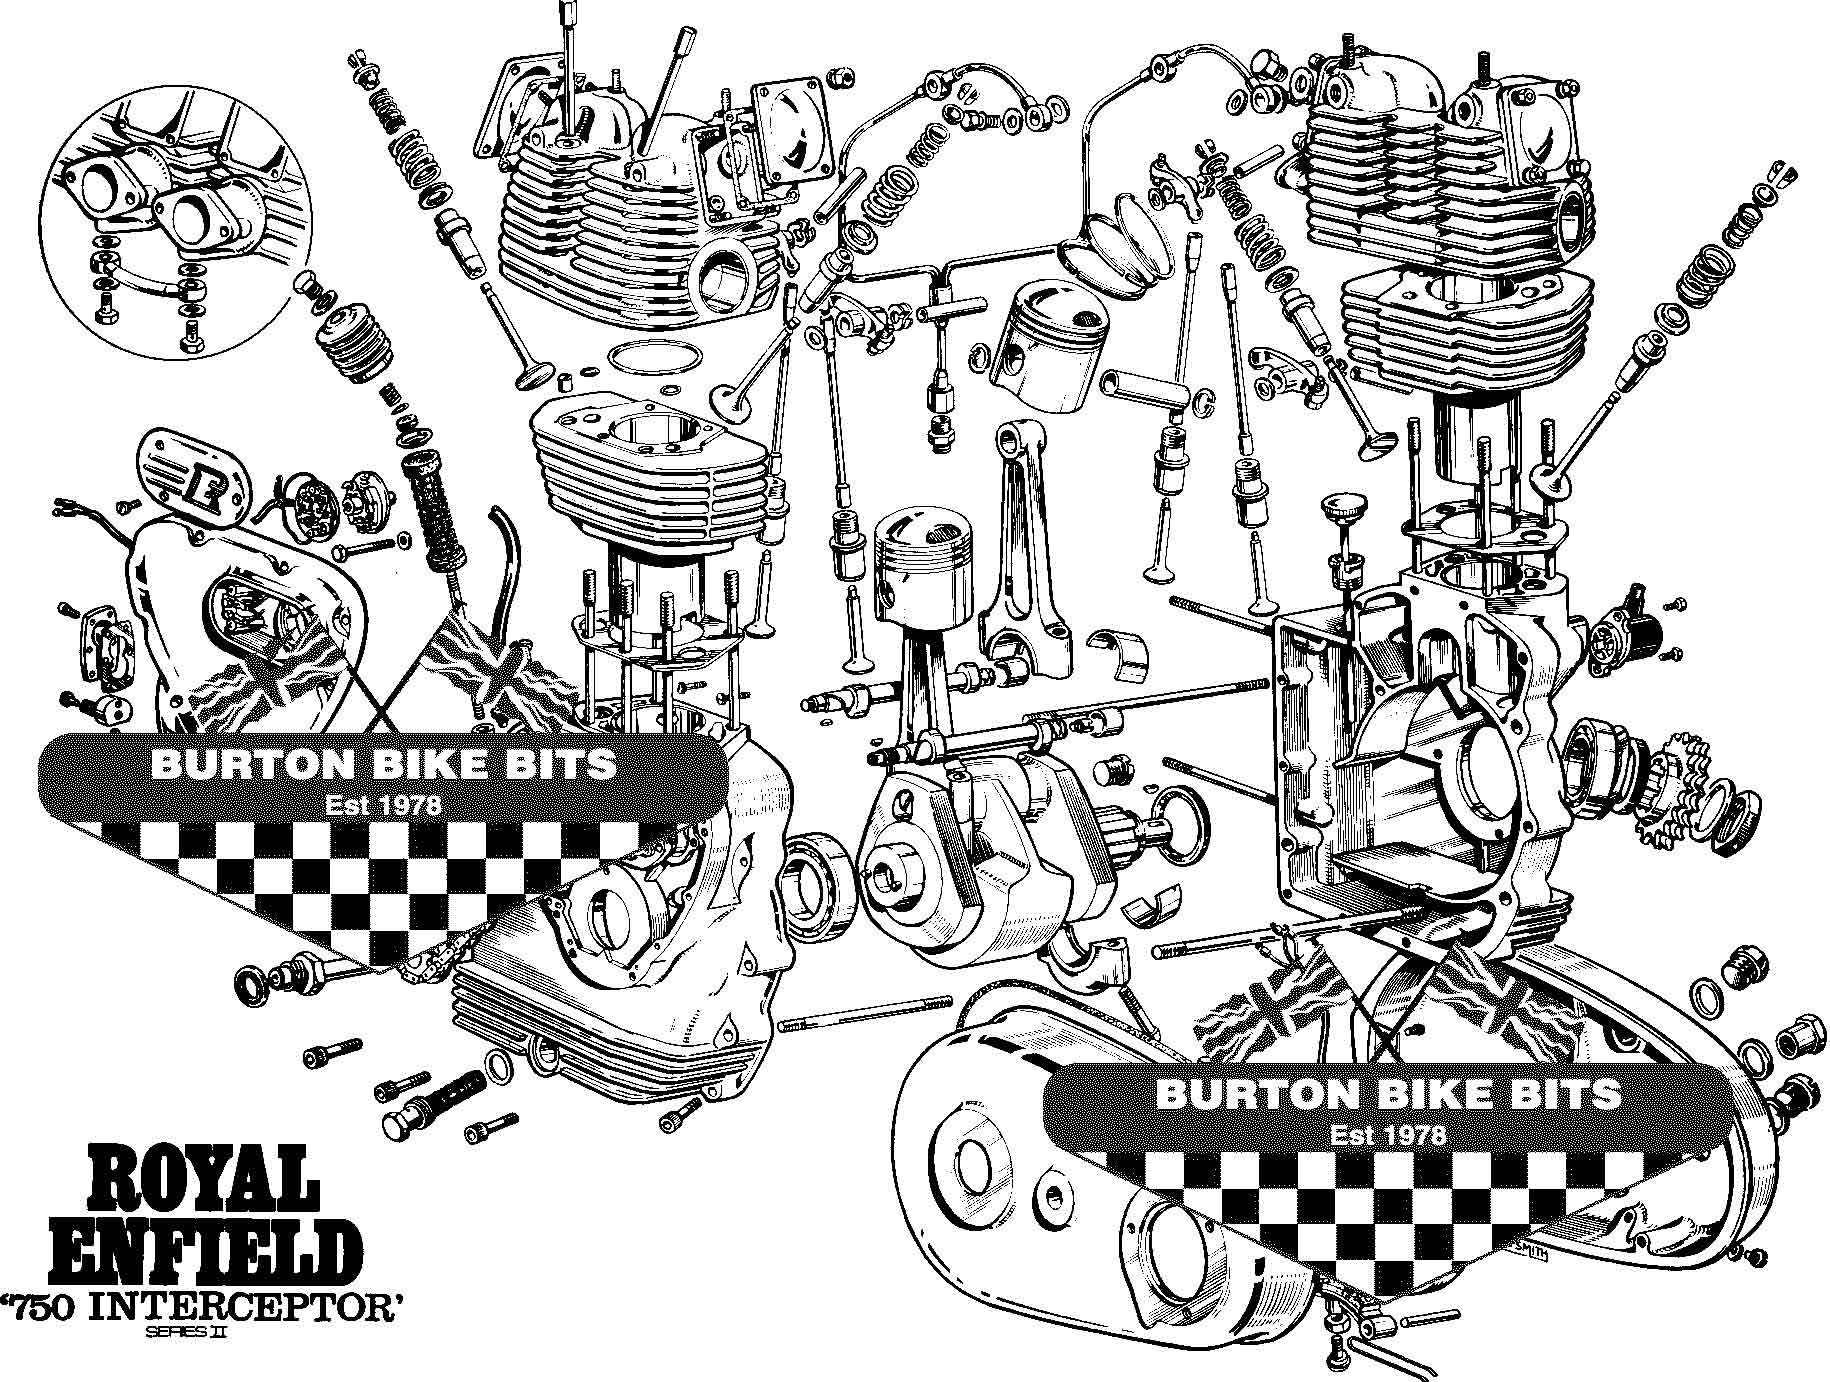 1985 Honda Fourtrax Wiring Schematic furthermore Viewtopic also 2013 03 01 archive likewise 1983 Honda Shadow 750 Wiring Diagram also Yamaha Rd350 R5c Wiring Diagram. on royal enfield 350 wiring diagram